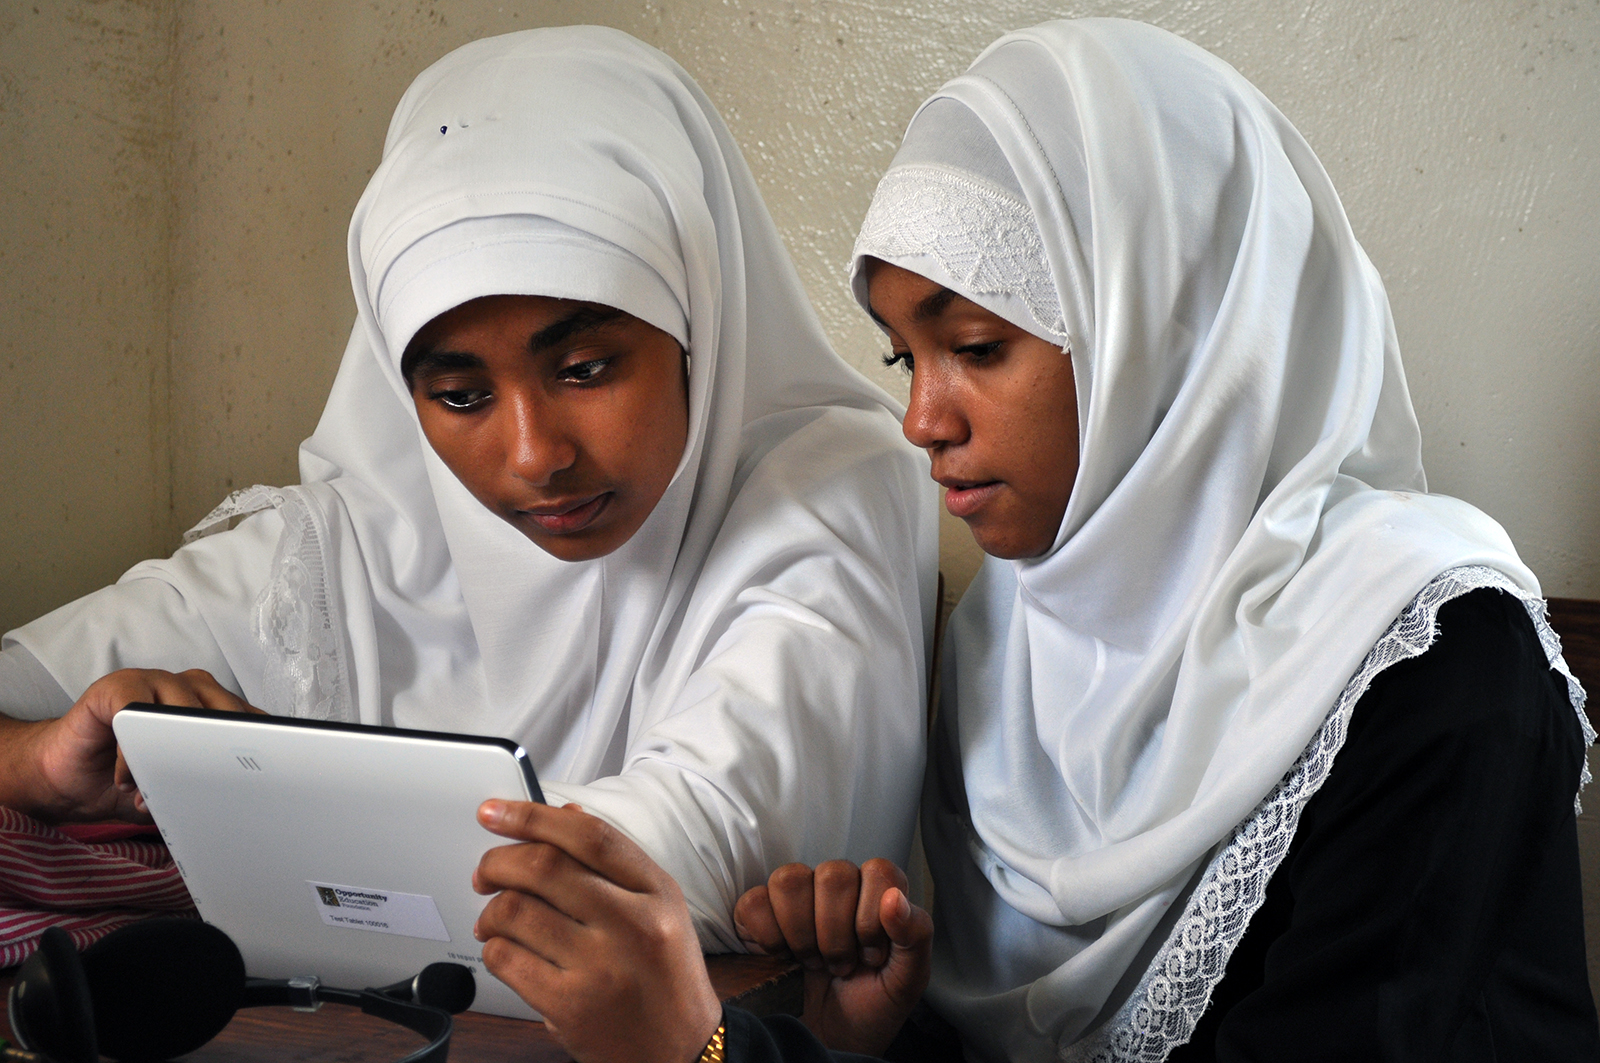 Two Zanzibar students work together in class holding an Opportunity Tablet, provided by Opportunity Education.